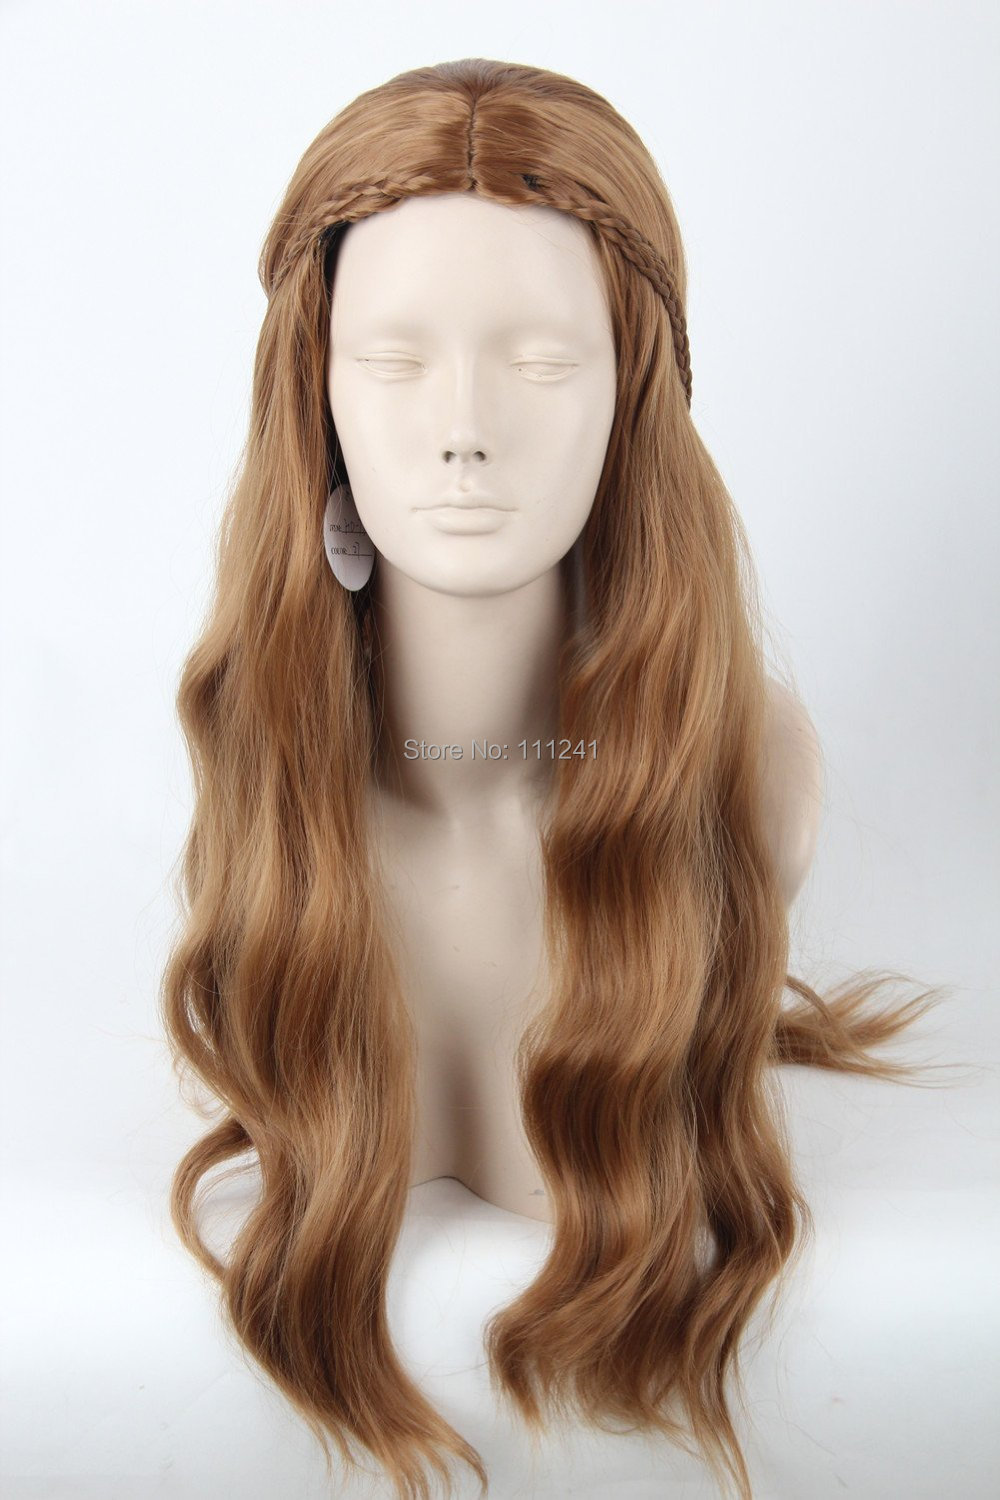 margaery tyrell reviews online shopping margaery tyrell reviews a song of ice and fire actress margaery tyrell wig long wavy brown wig braid cosplay anime wig